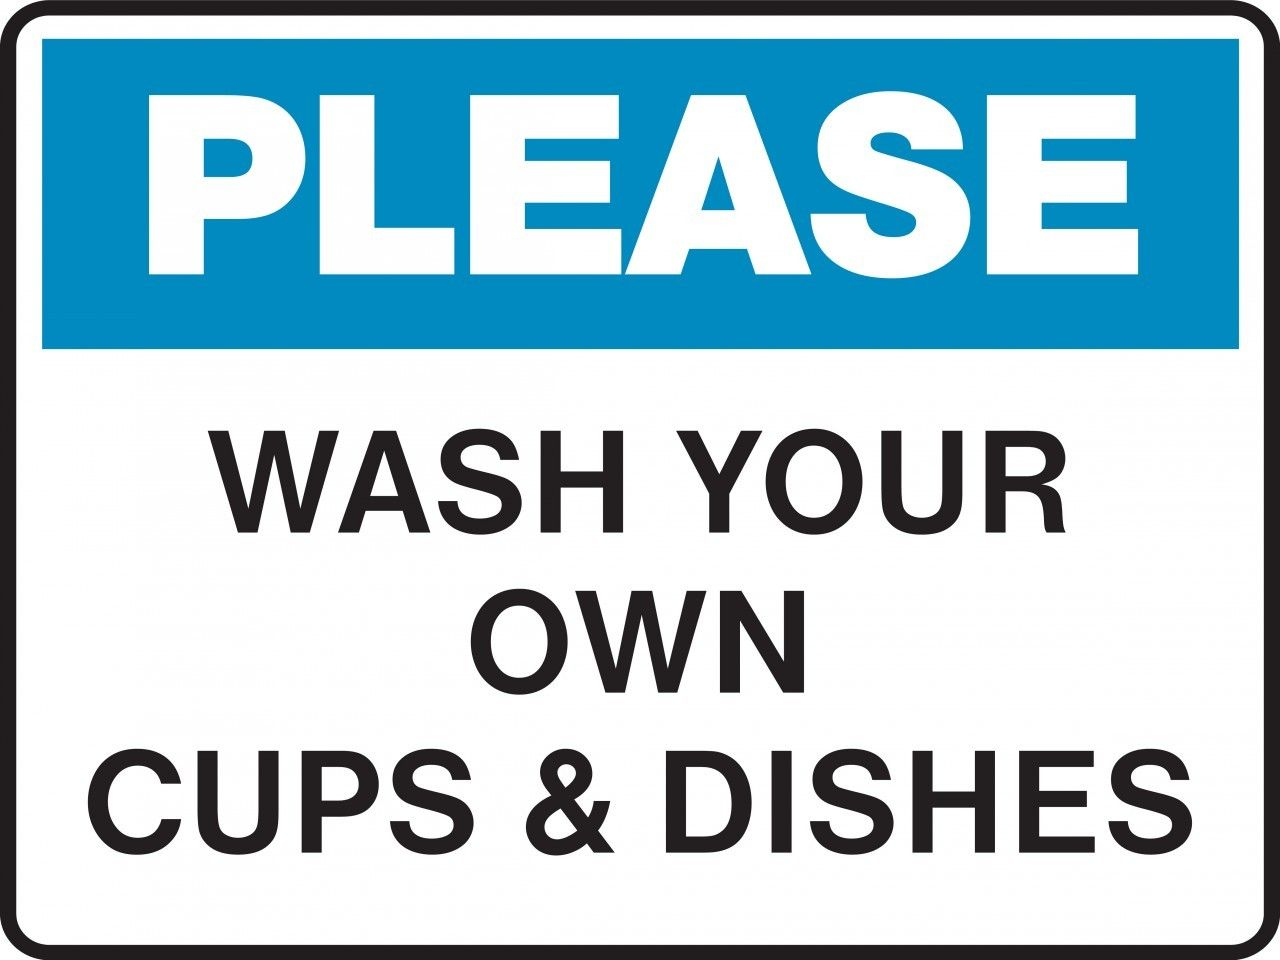 clean dishes sign - photo #2